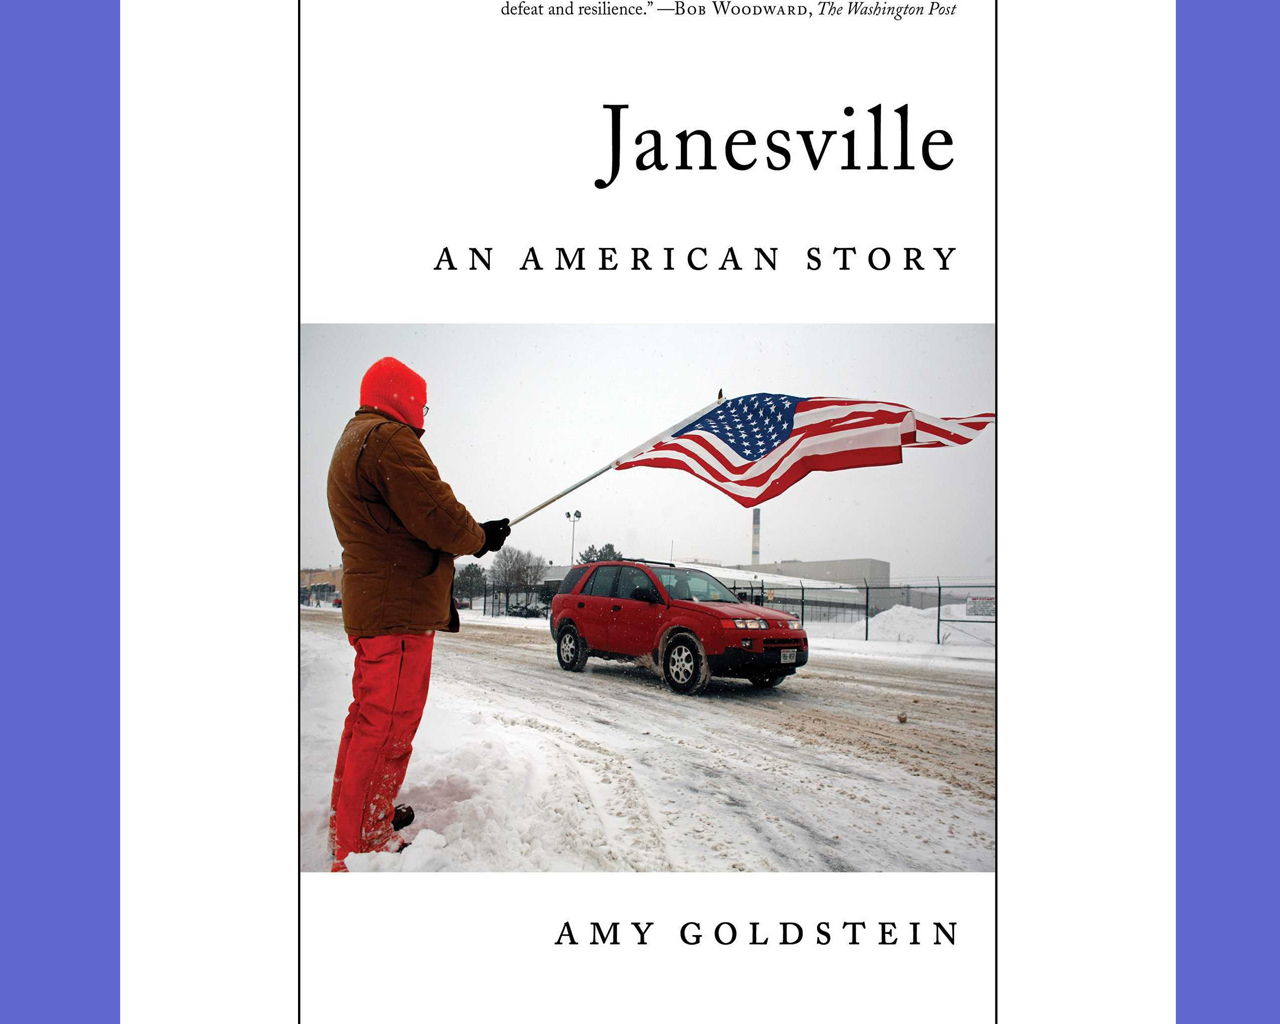 Janesville: An American Story By Amy Goldstein.